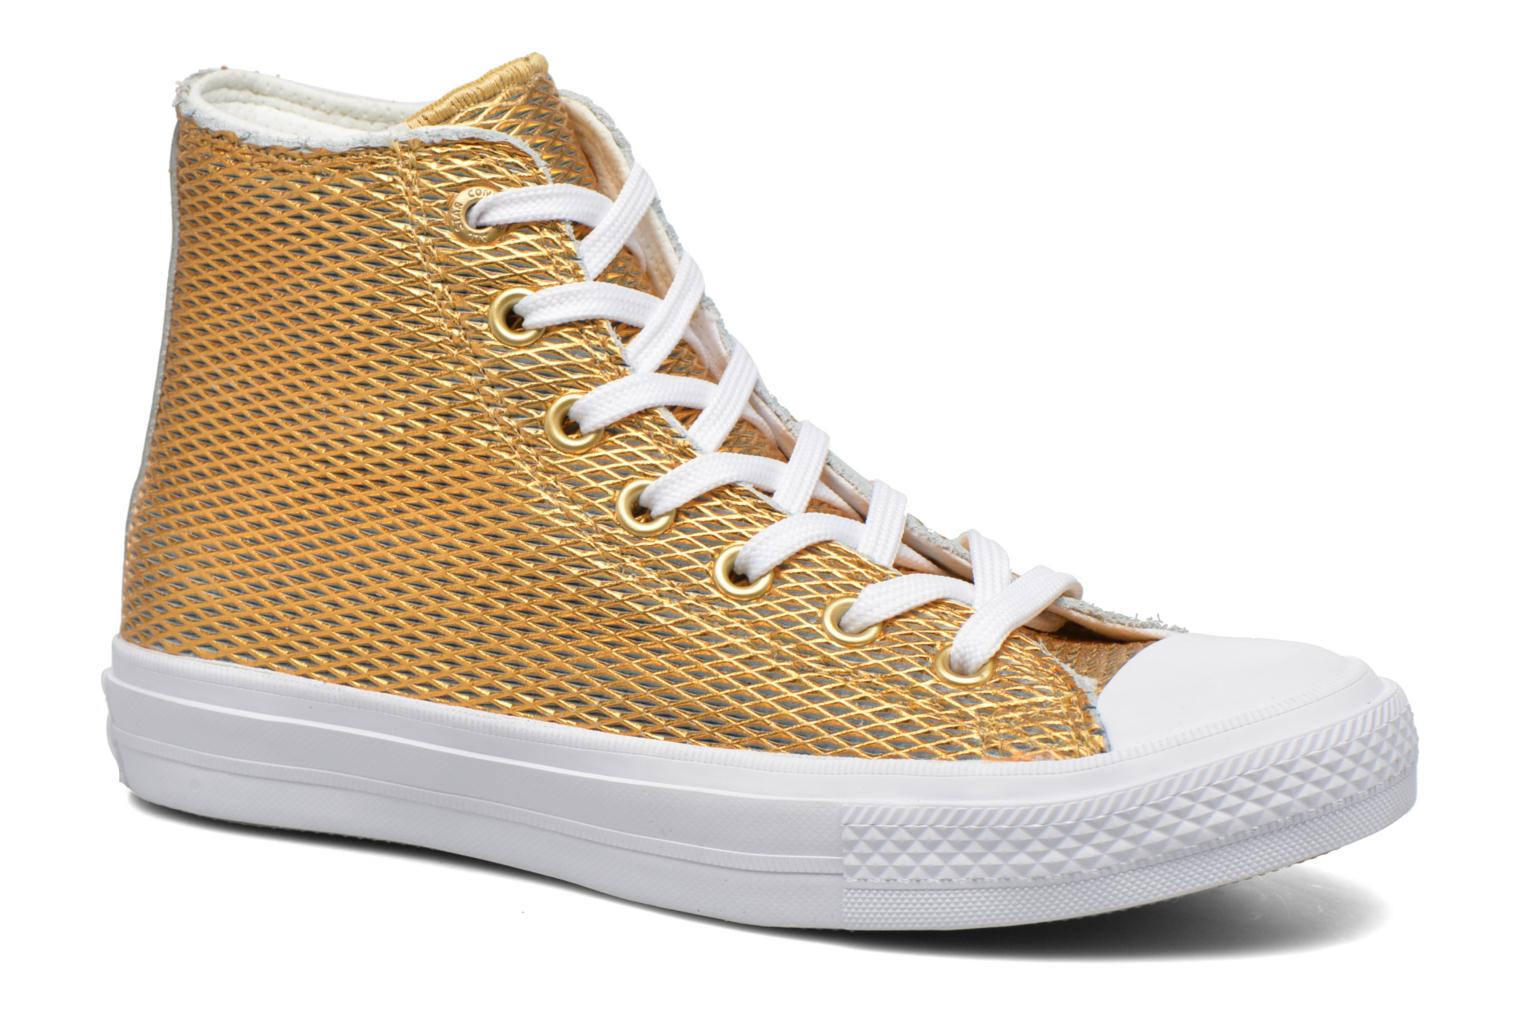 Sneakers Chuck Taylor All Star II Hi Perf Metallic Leather by ConverseConverseGoud en bronsPaar schoenen - Sneakers88875414845836Leer